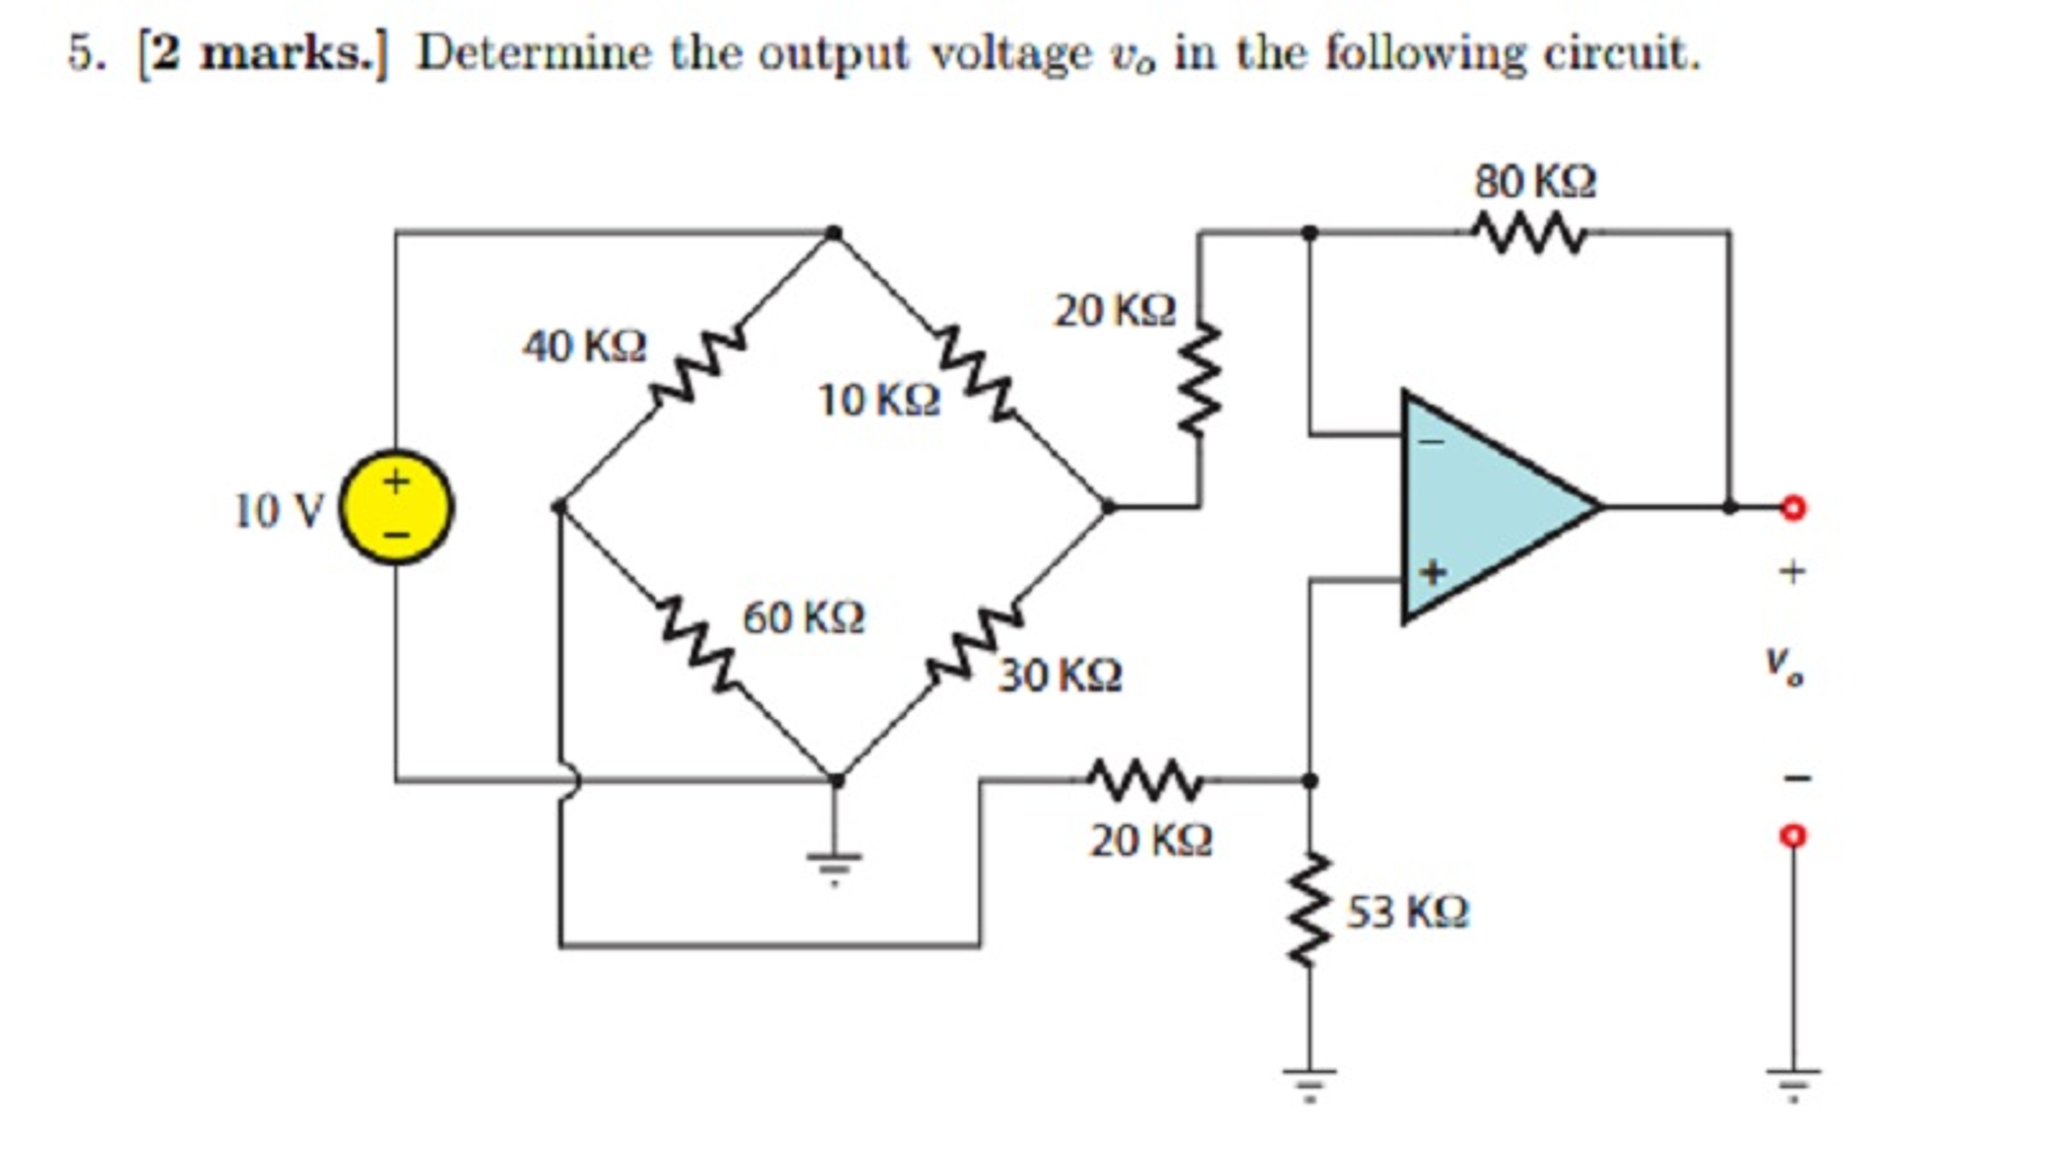 Determine the output voltage v in the following circuit